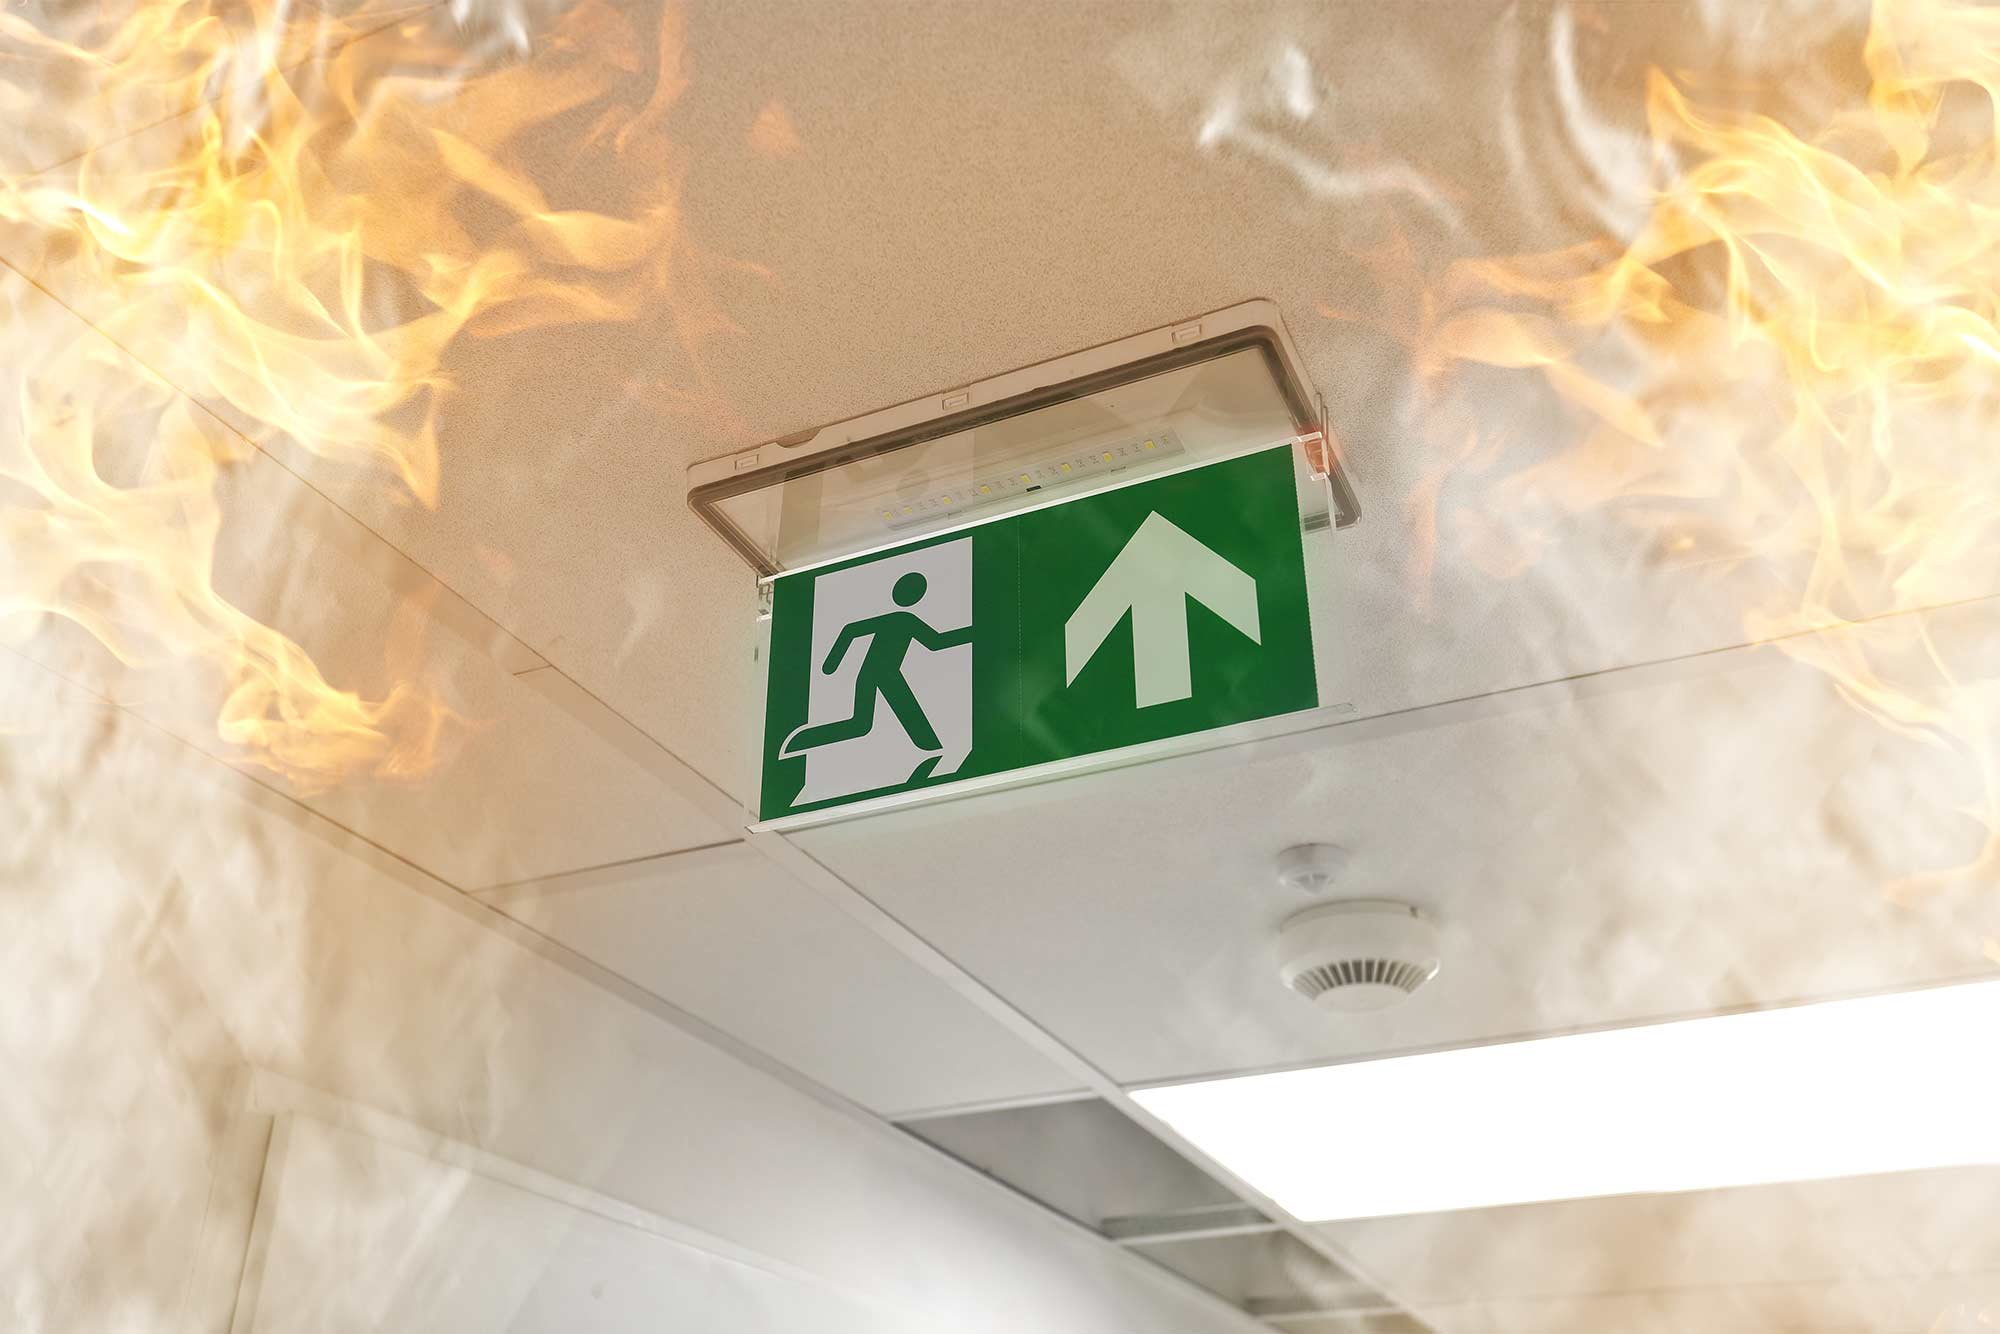 Get your Exit and Emergency lights checked with Checkmate Safety.